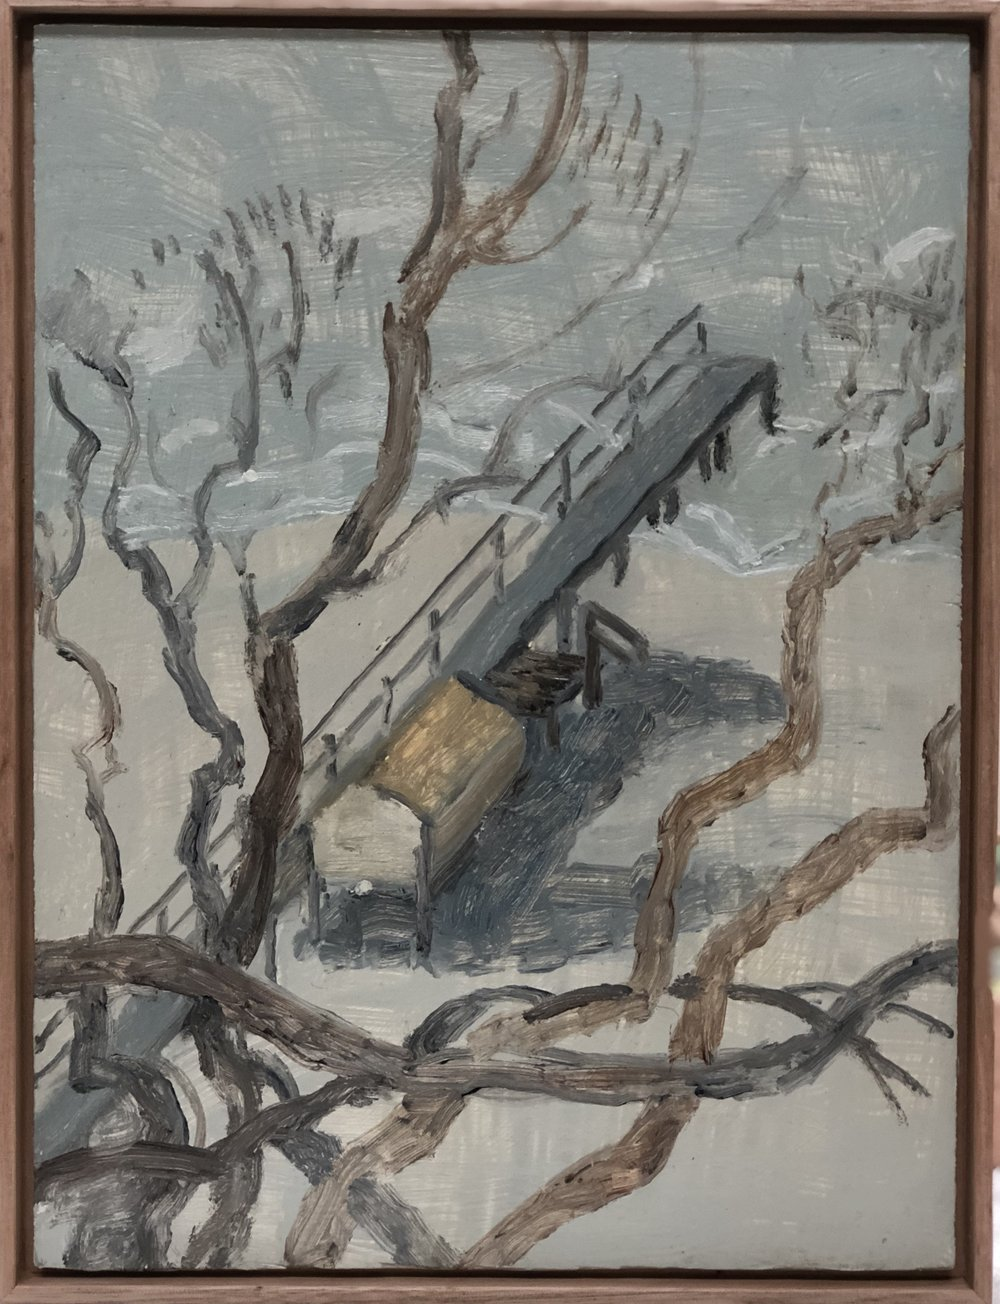 Paul Maher  Boashed through the trees  2017 oil on board 31 x 24.5cm framed